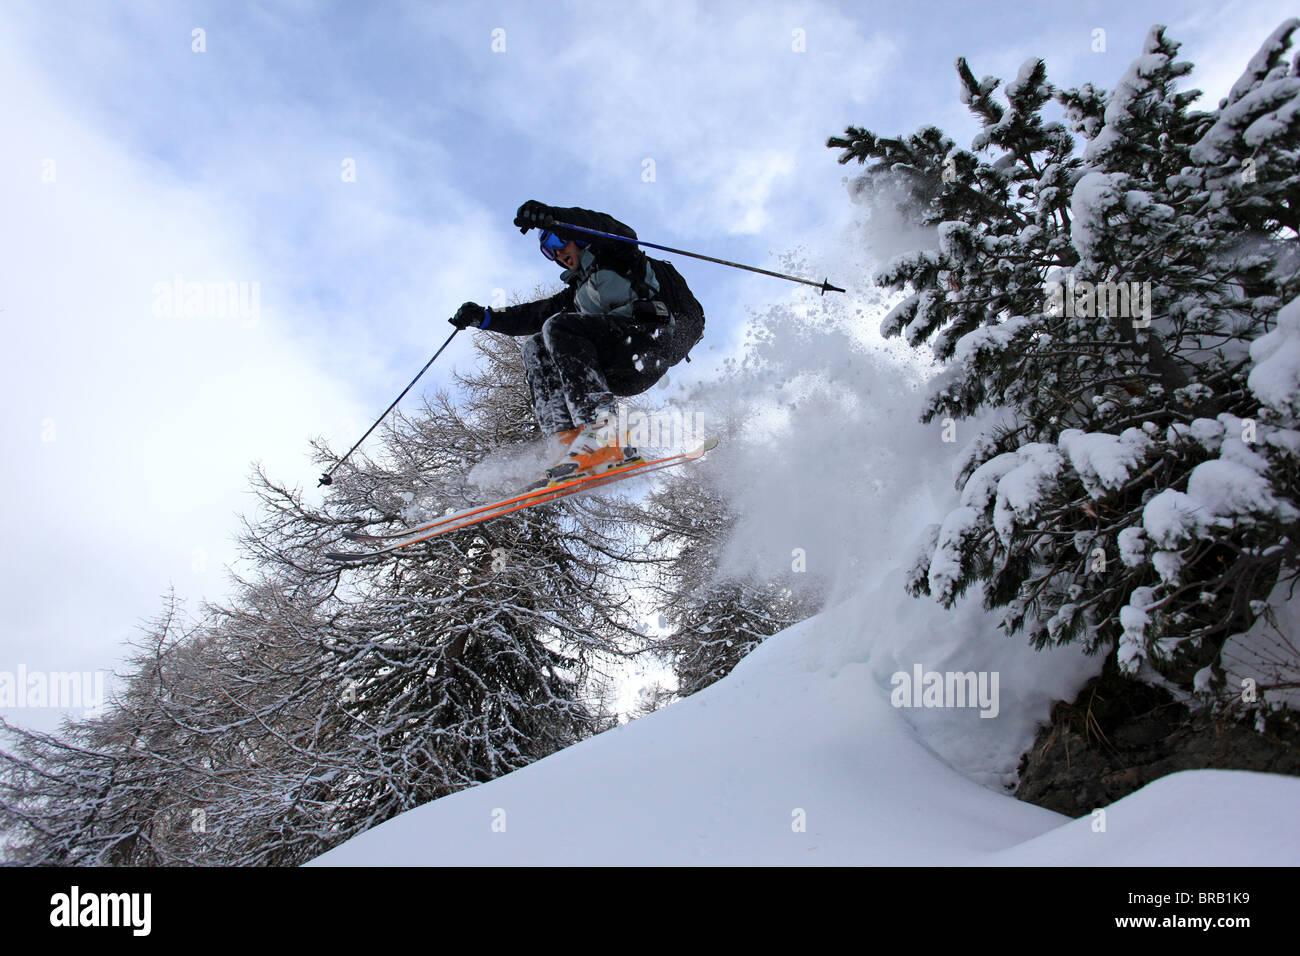 A skier jumps over some rocks and between pine trees lifting powder snow on a Val Gardena off piste slope - Stock Image